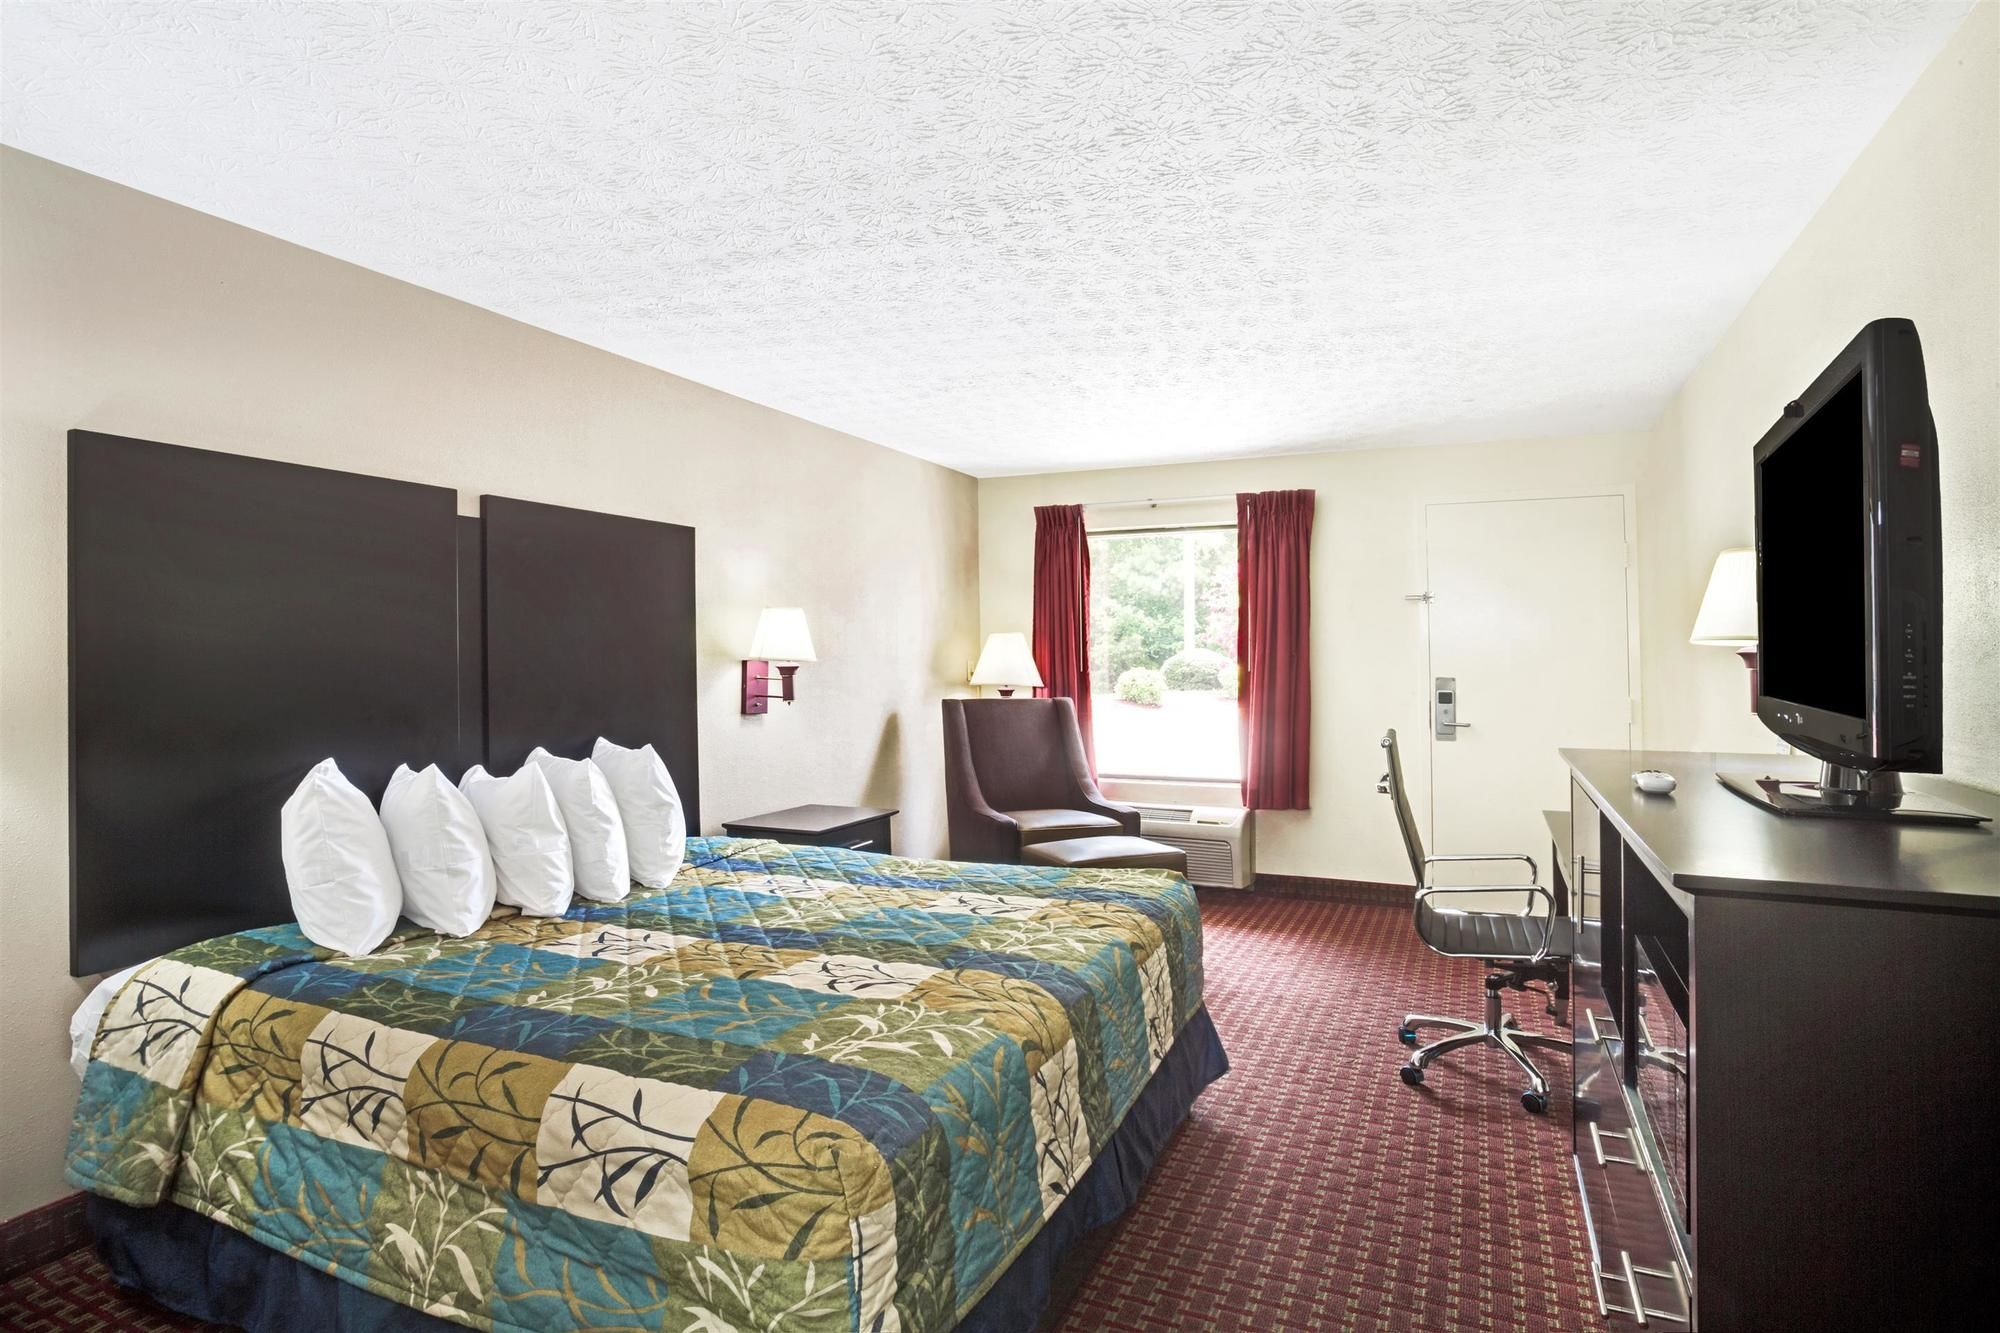 Days Inn Douglasville-Atlanta-Fairburn Road in Douglasville, GA